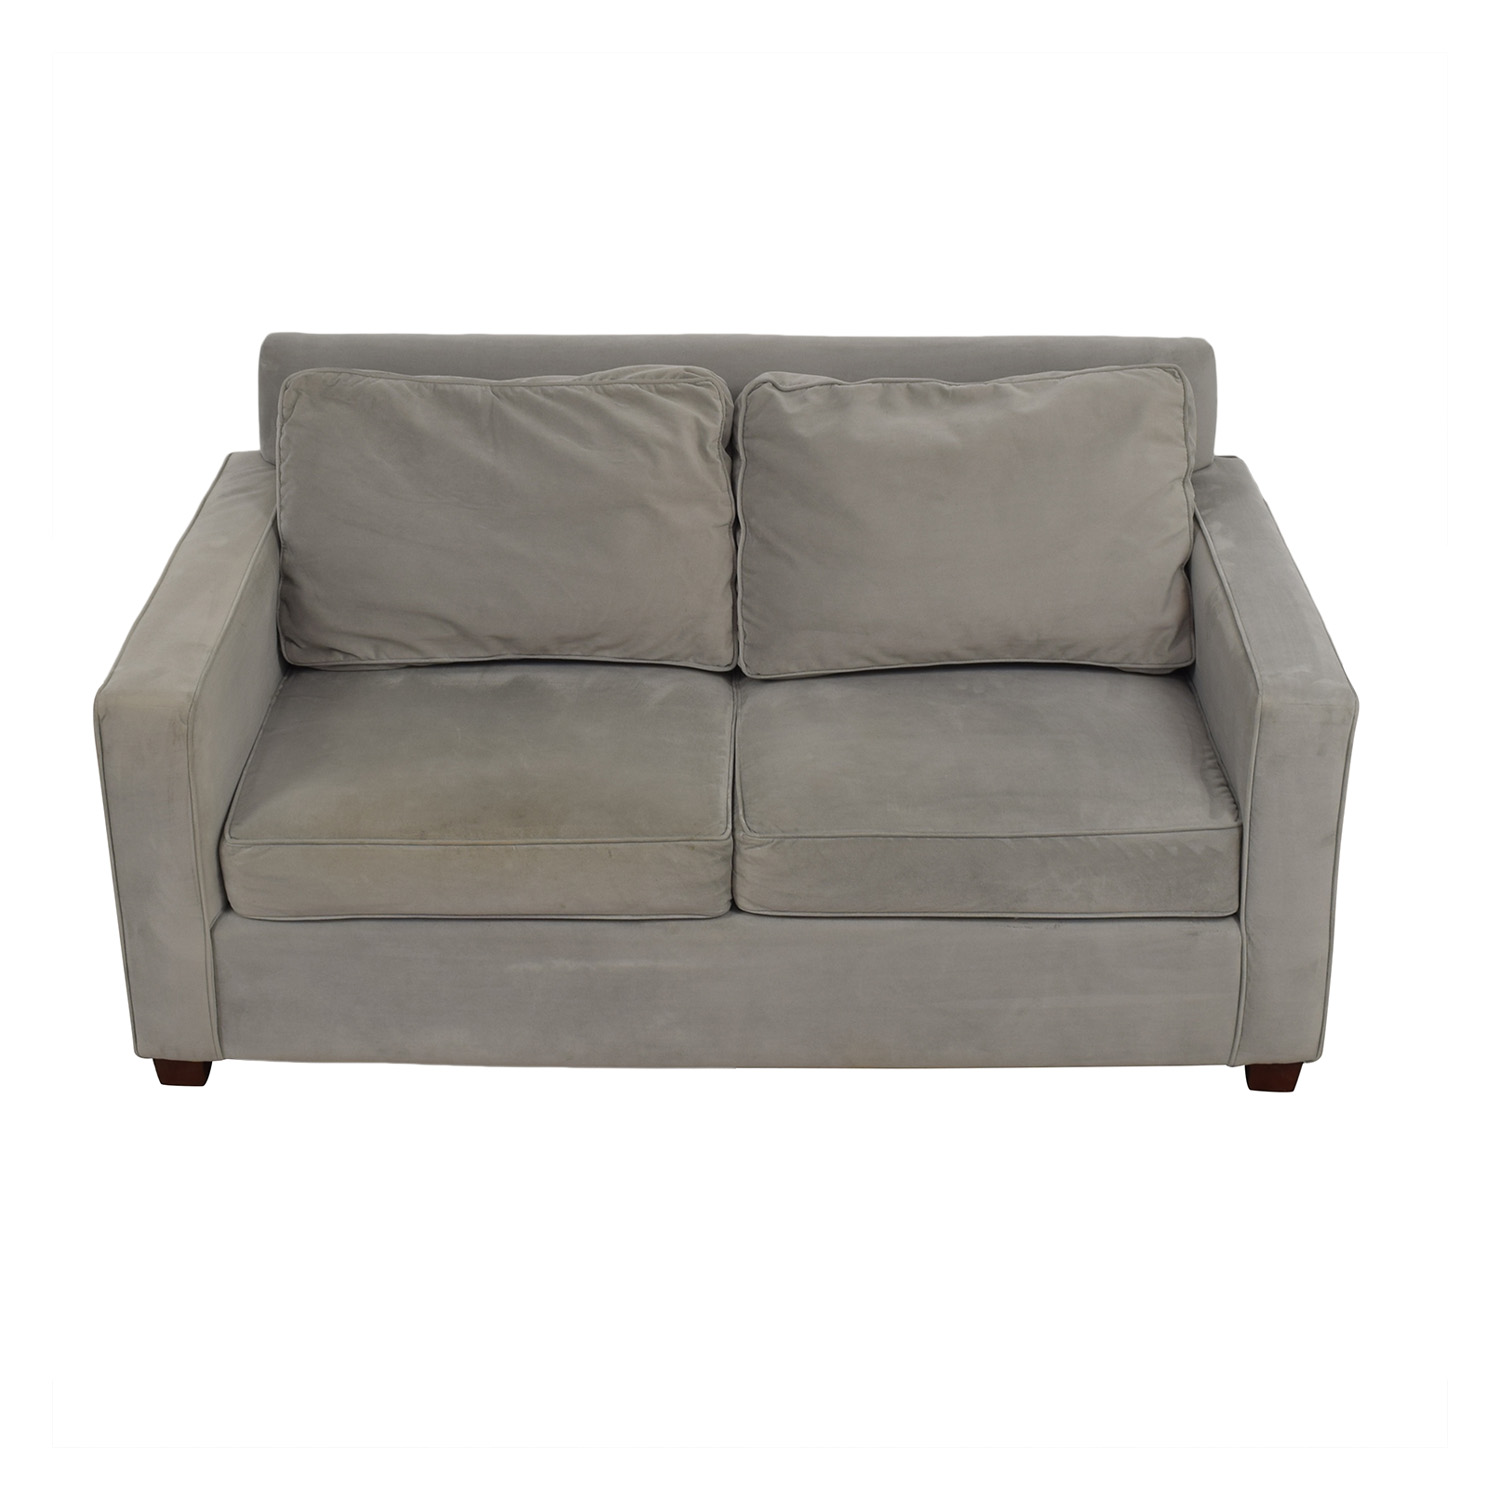 buy West Elm West Elm Henry Gray Loveseat online